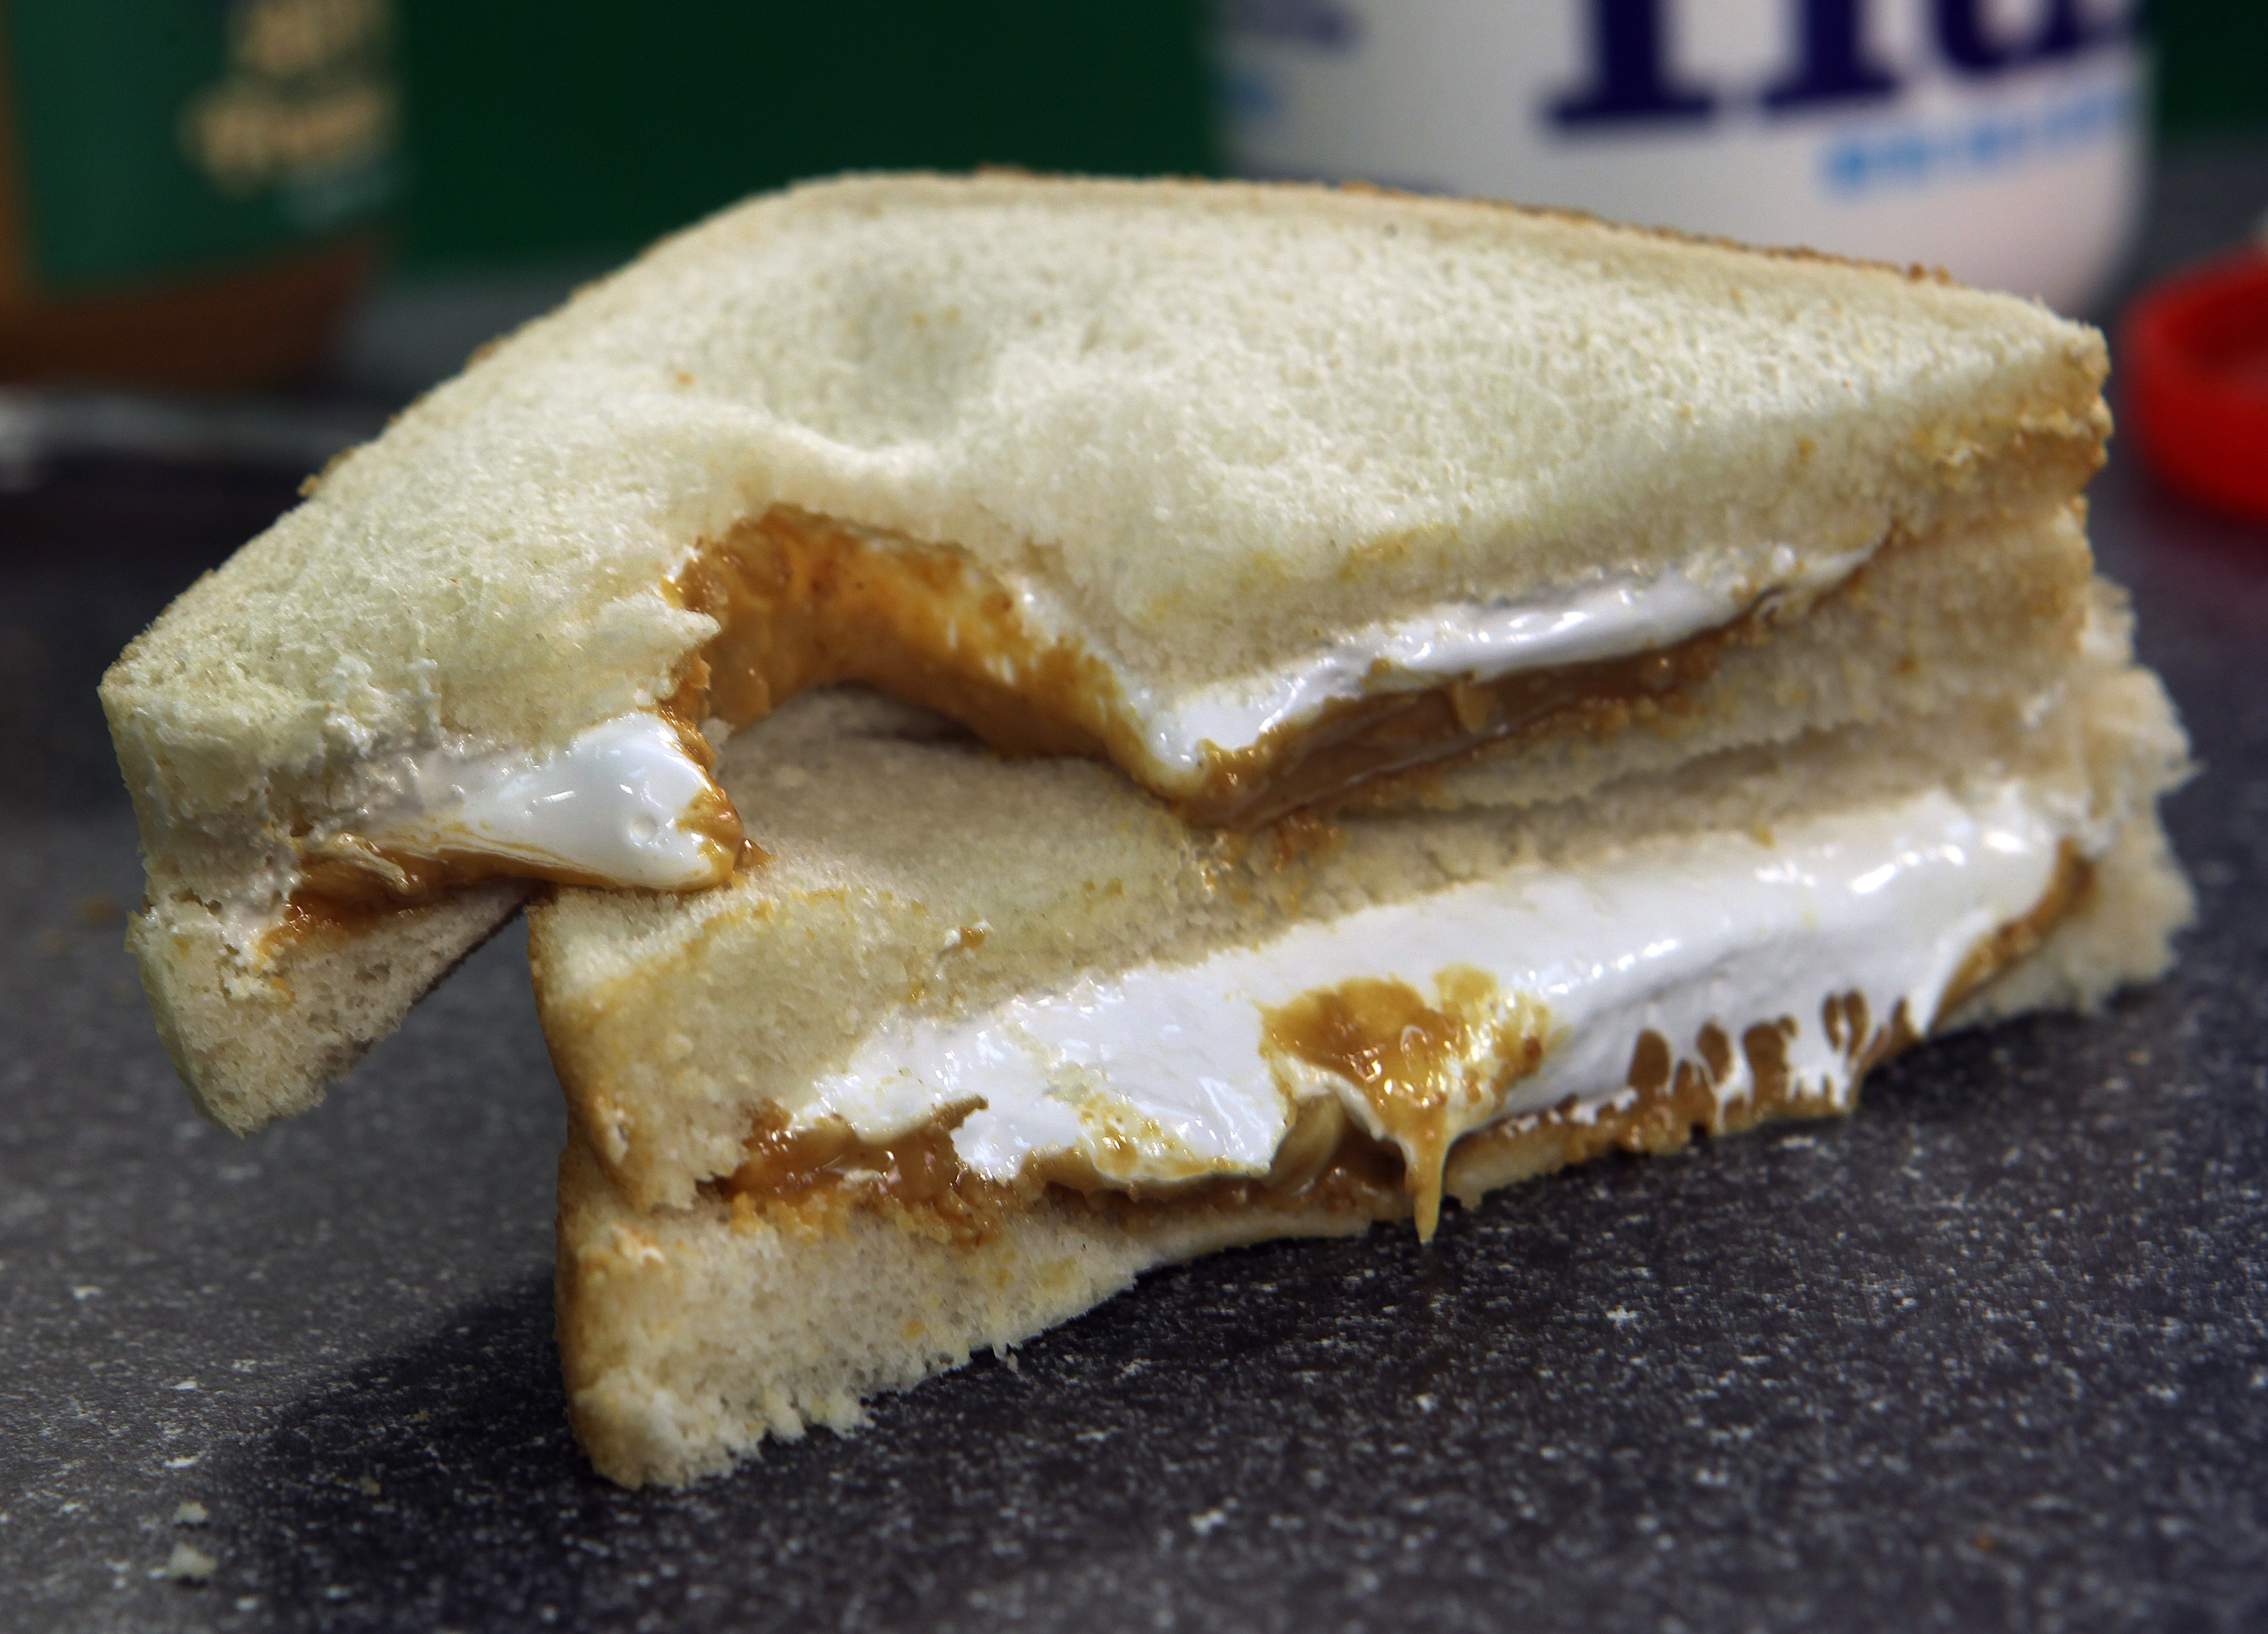 A sandwich on white bread is cut on the diagonal, with one half stacked on the other. It's filled with peanut butter and marshmallow Fluff.